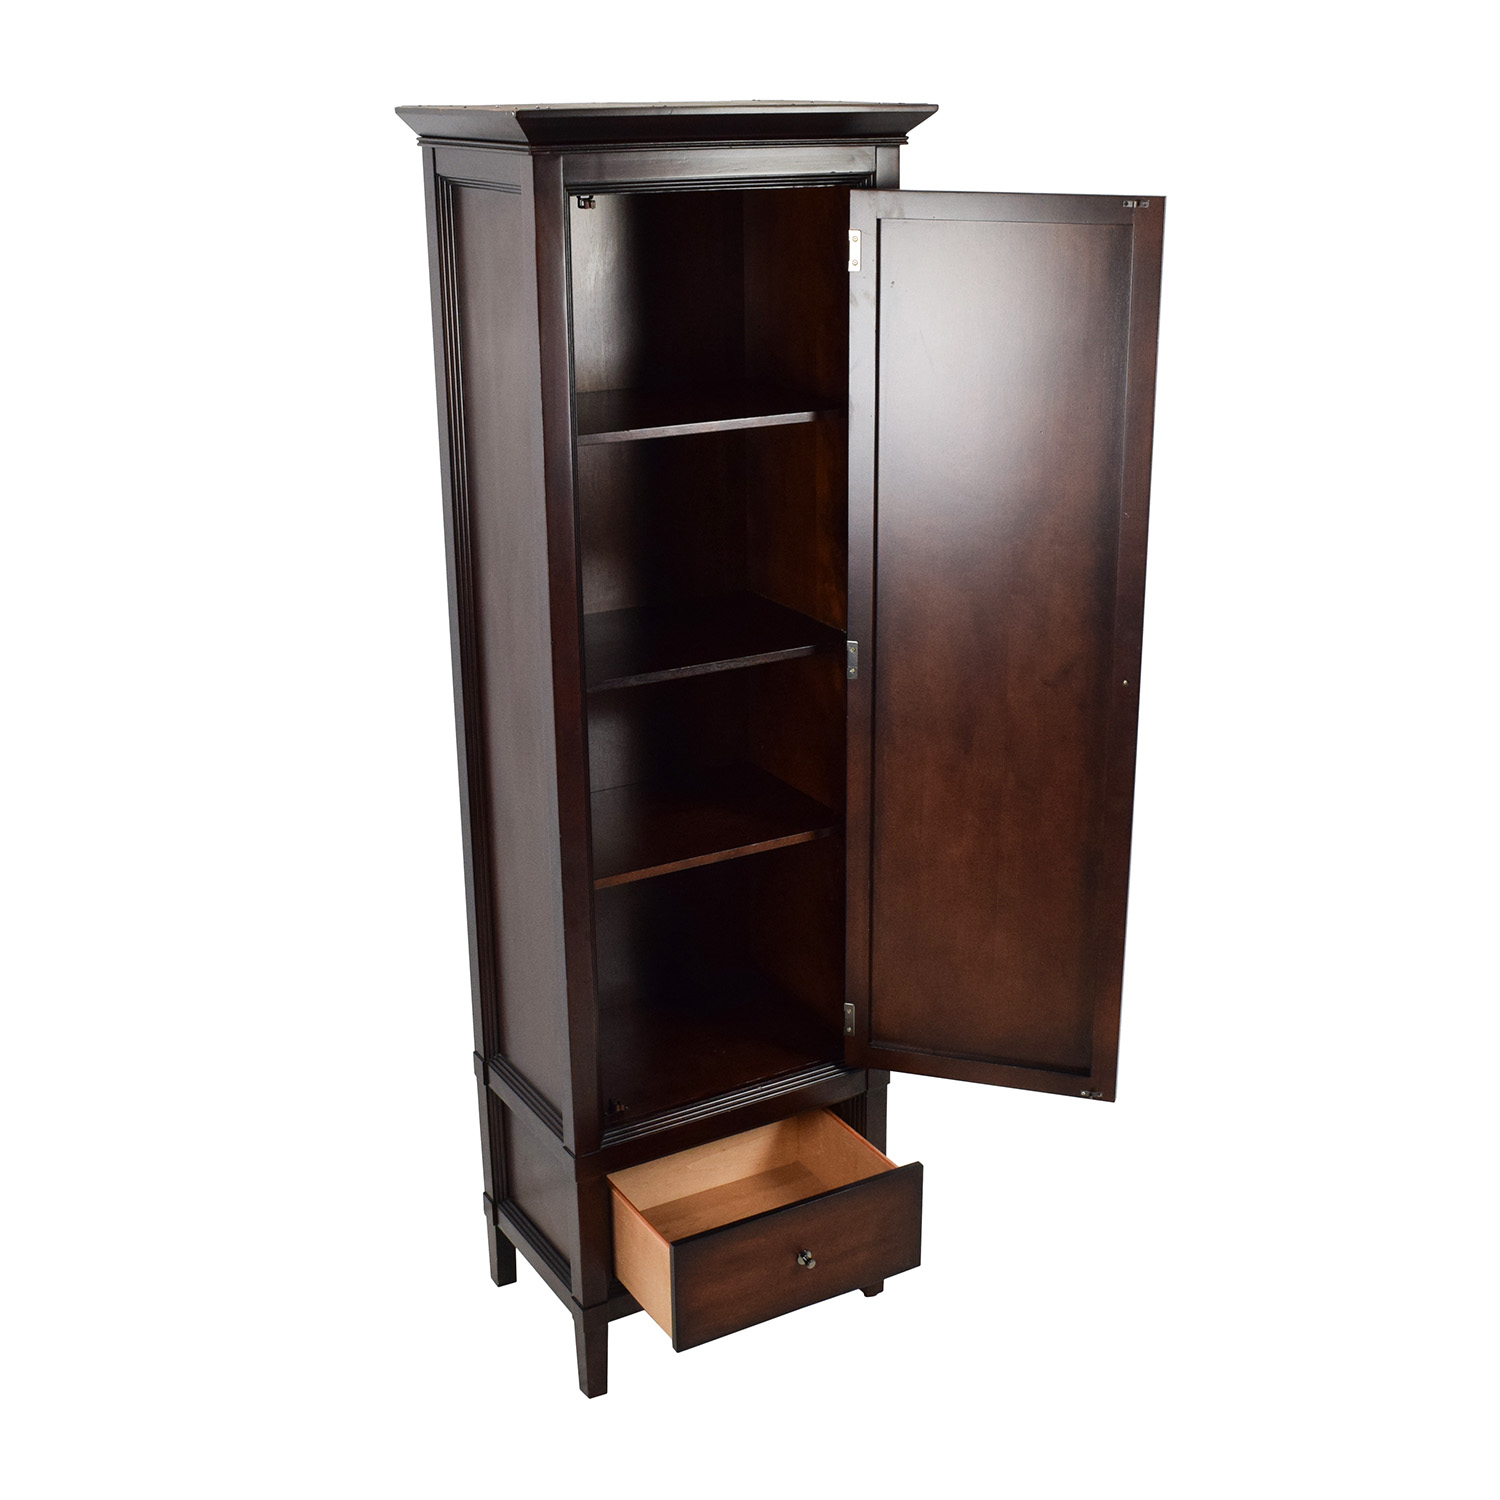 74 off macy 39 s macy 39 s tall armoire storage. Black Bedroom Furniture Sets. Home Design Ideas